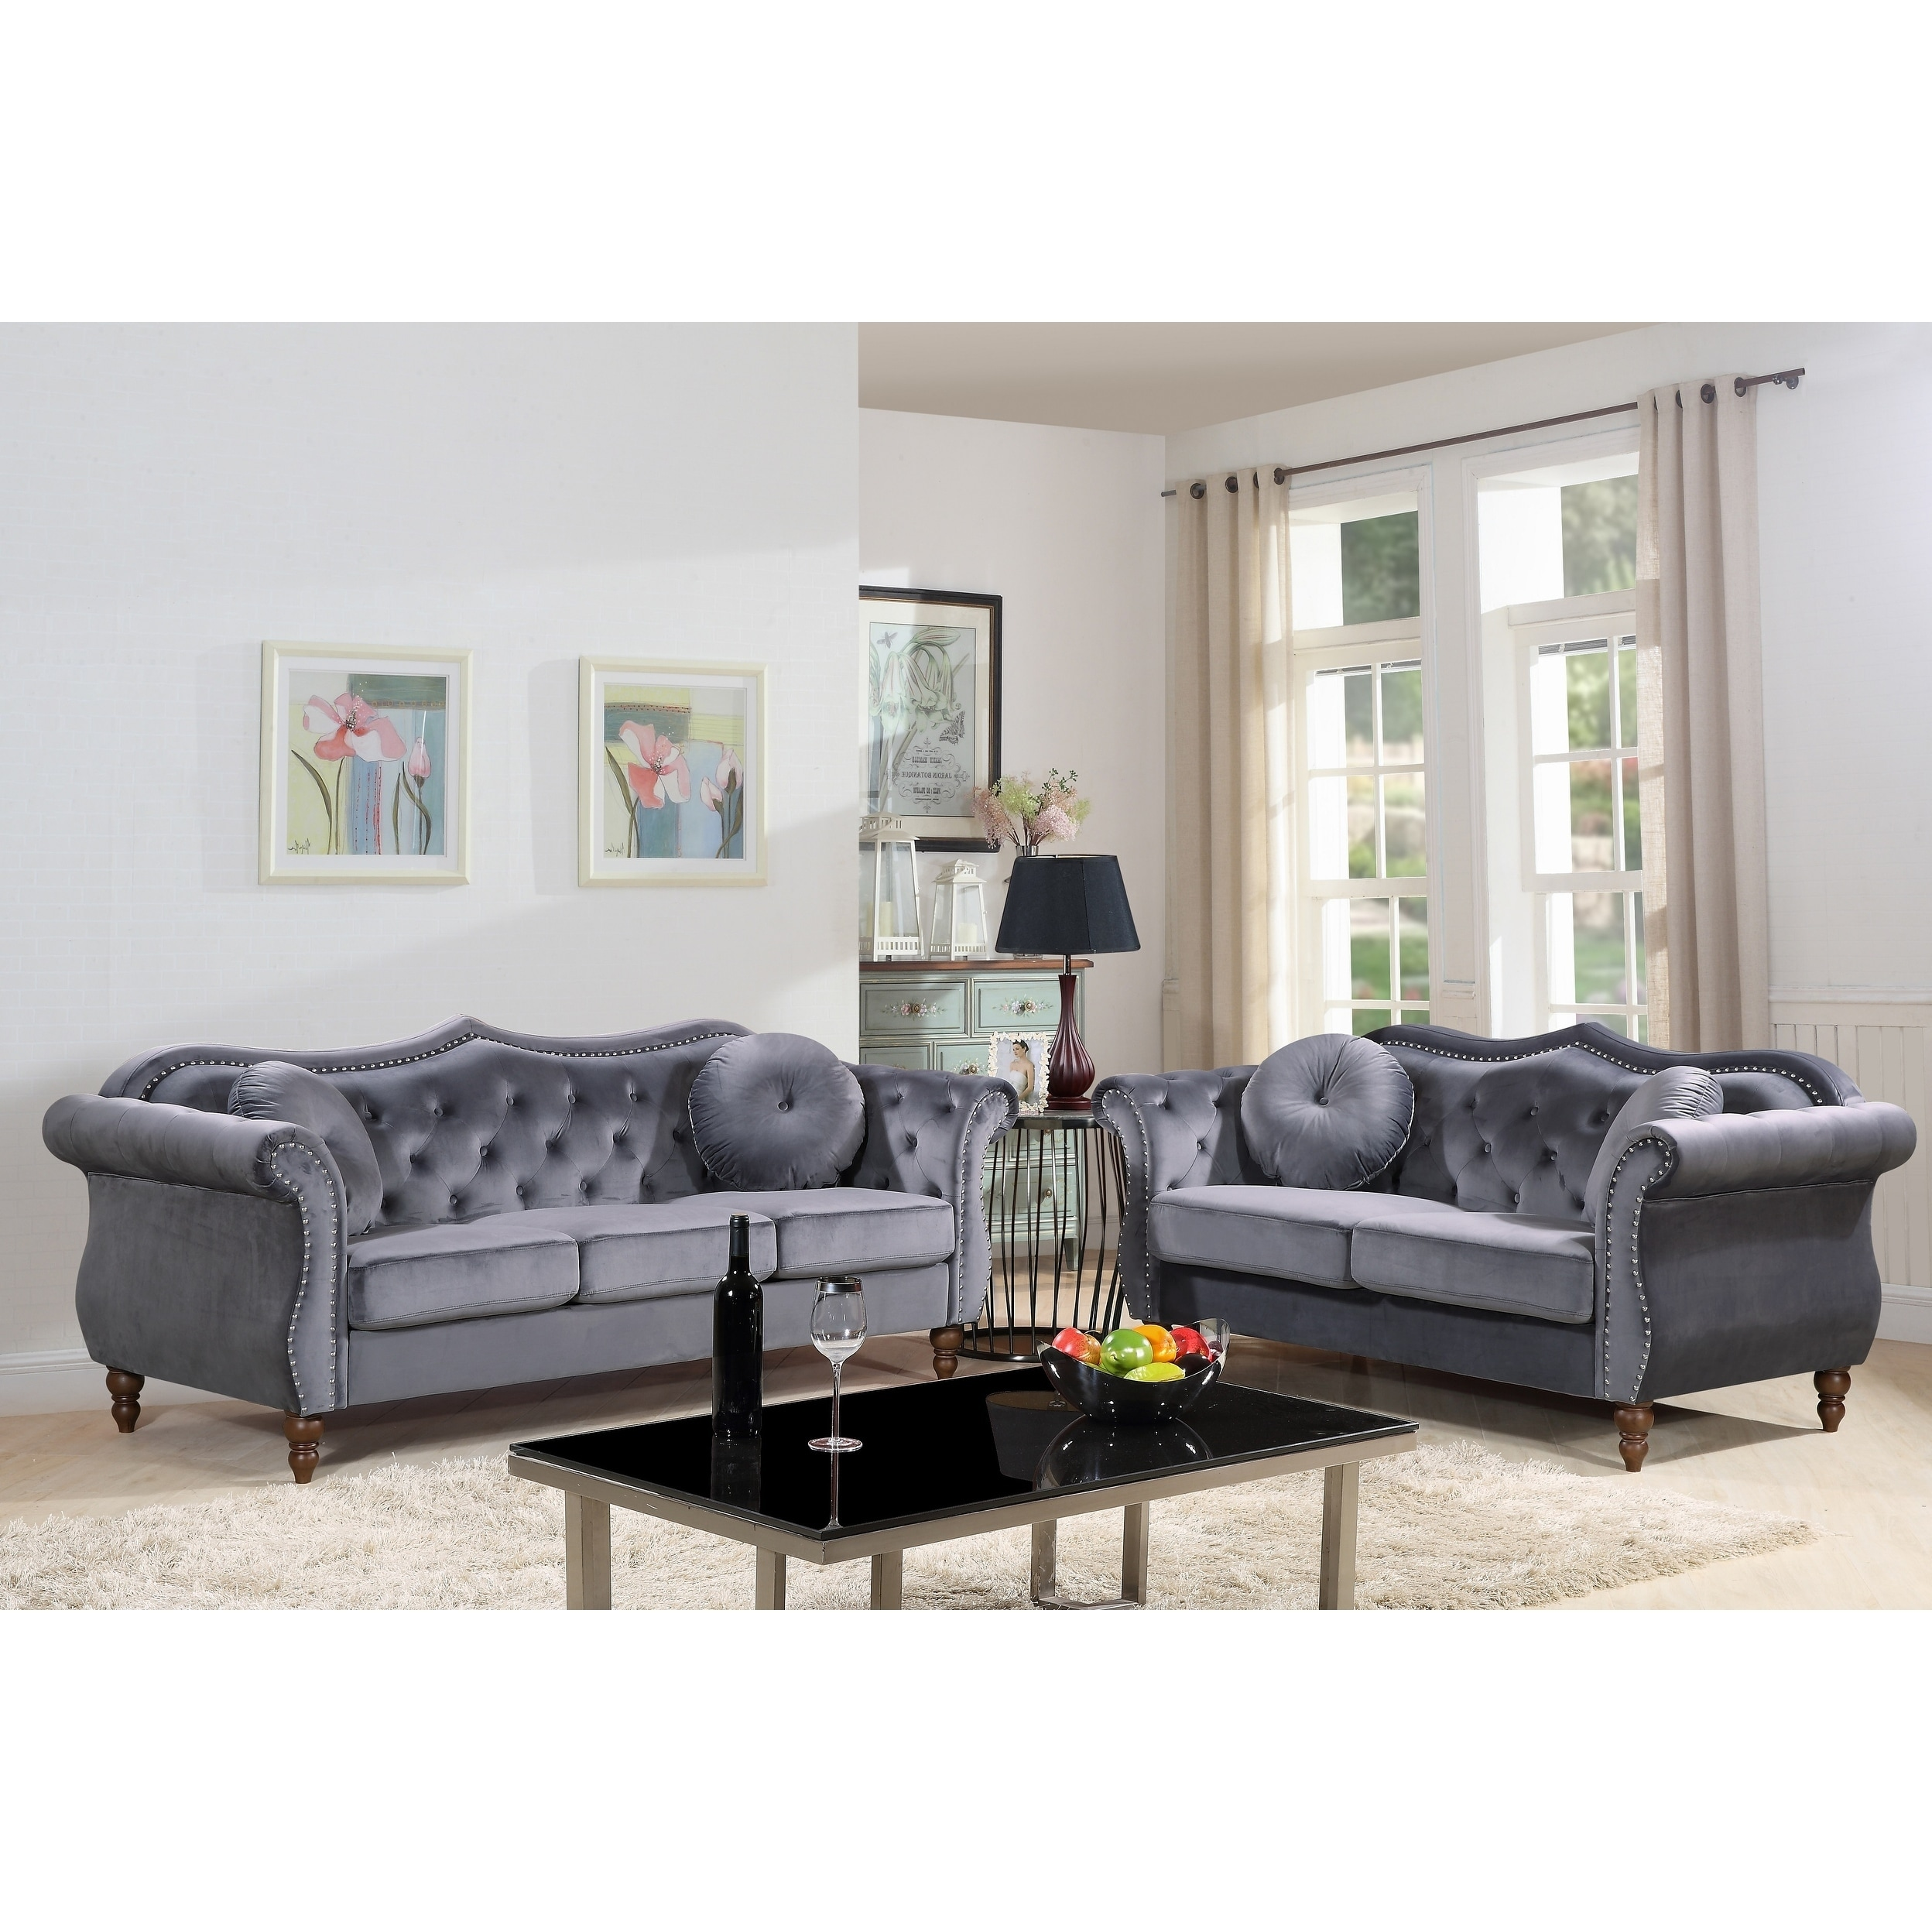 loveseat back plum cushions pin deep traditional x wide sofa cm with bridgeford scatter